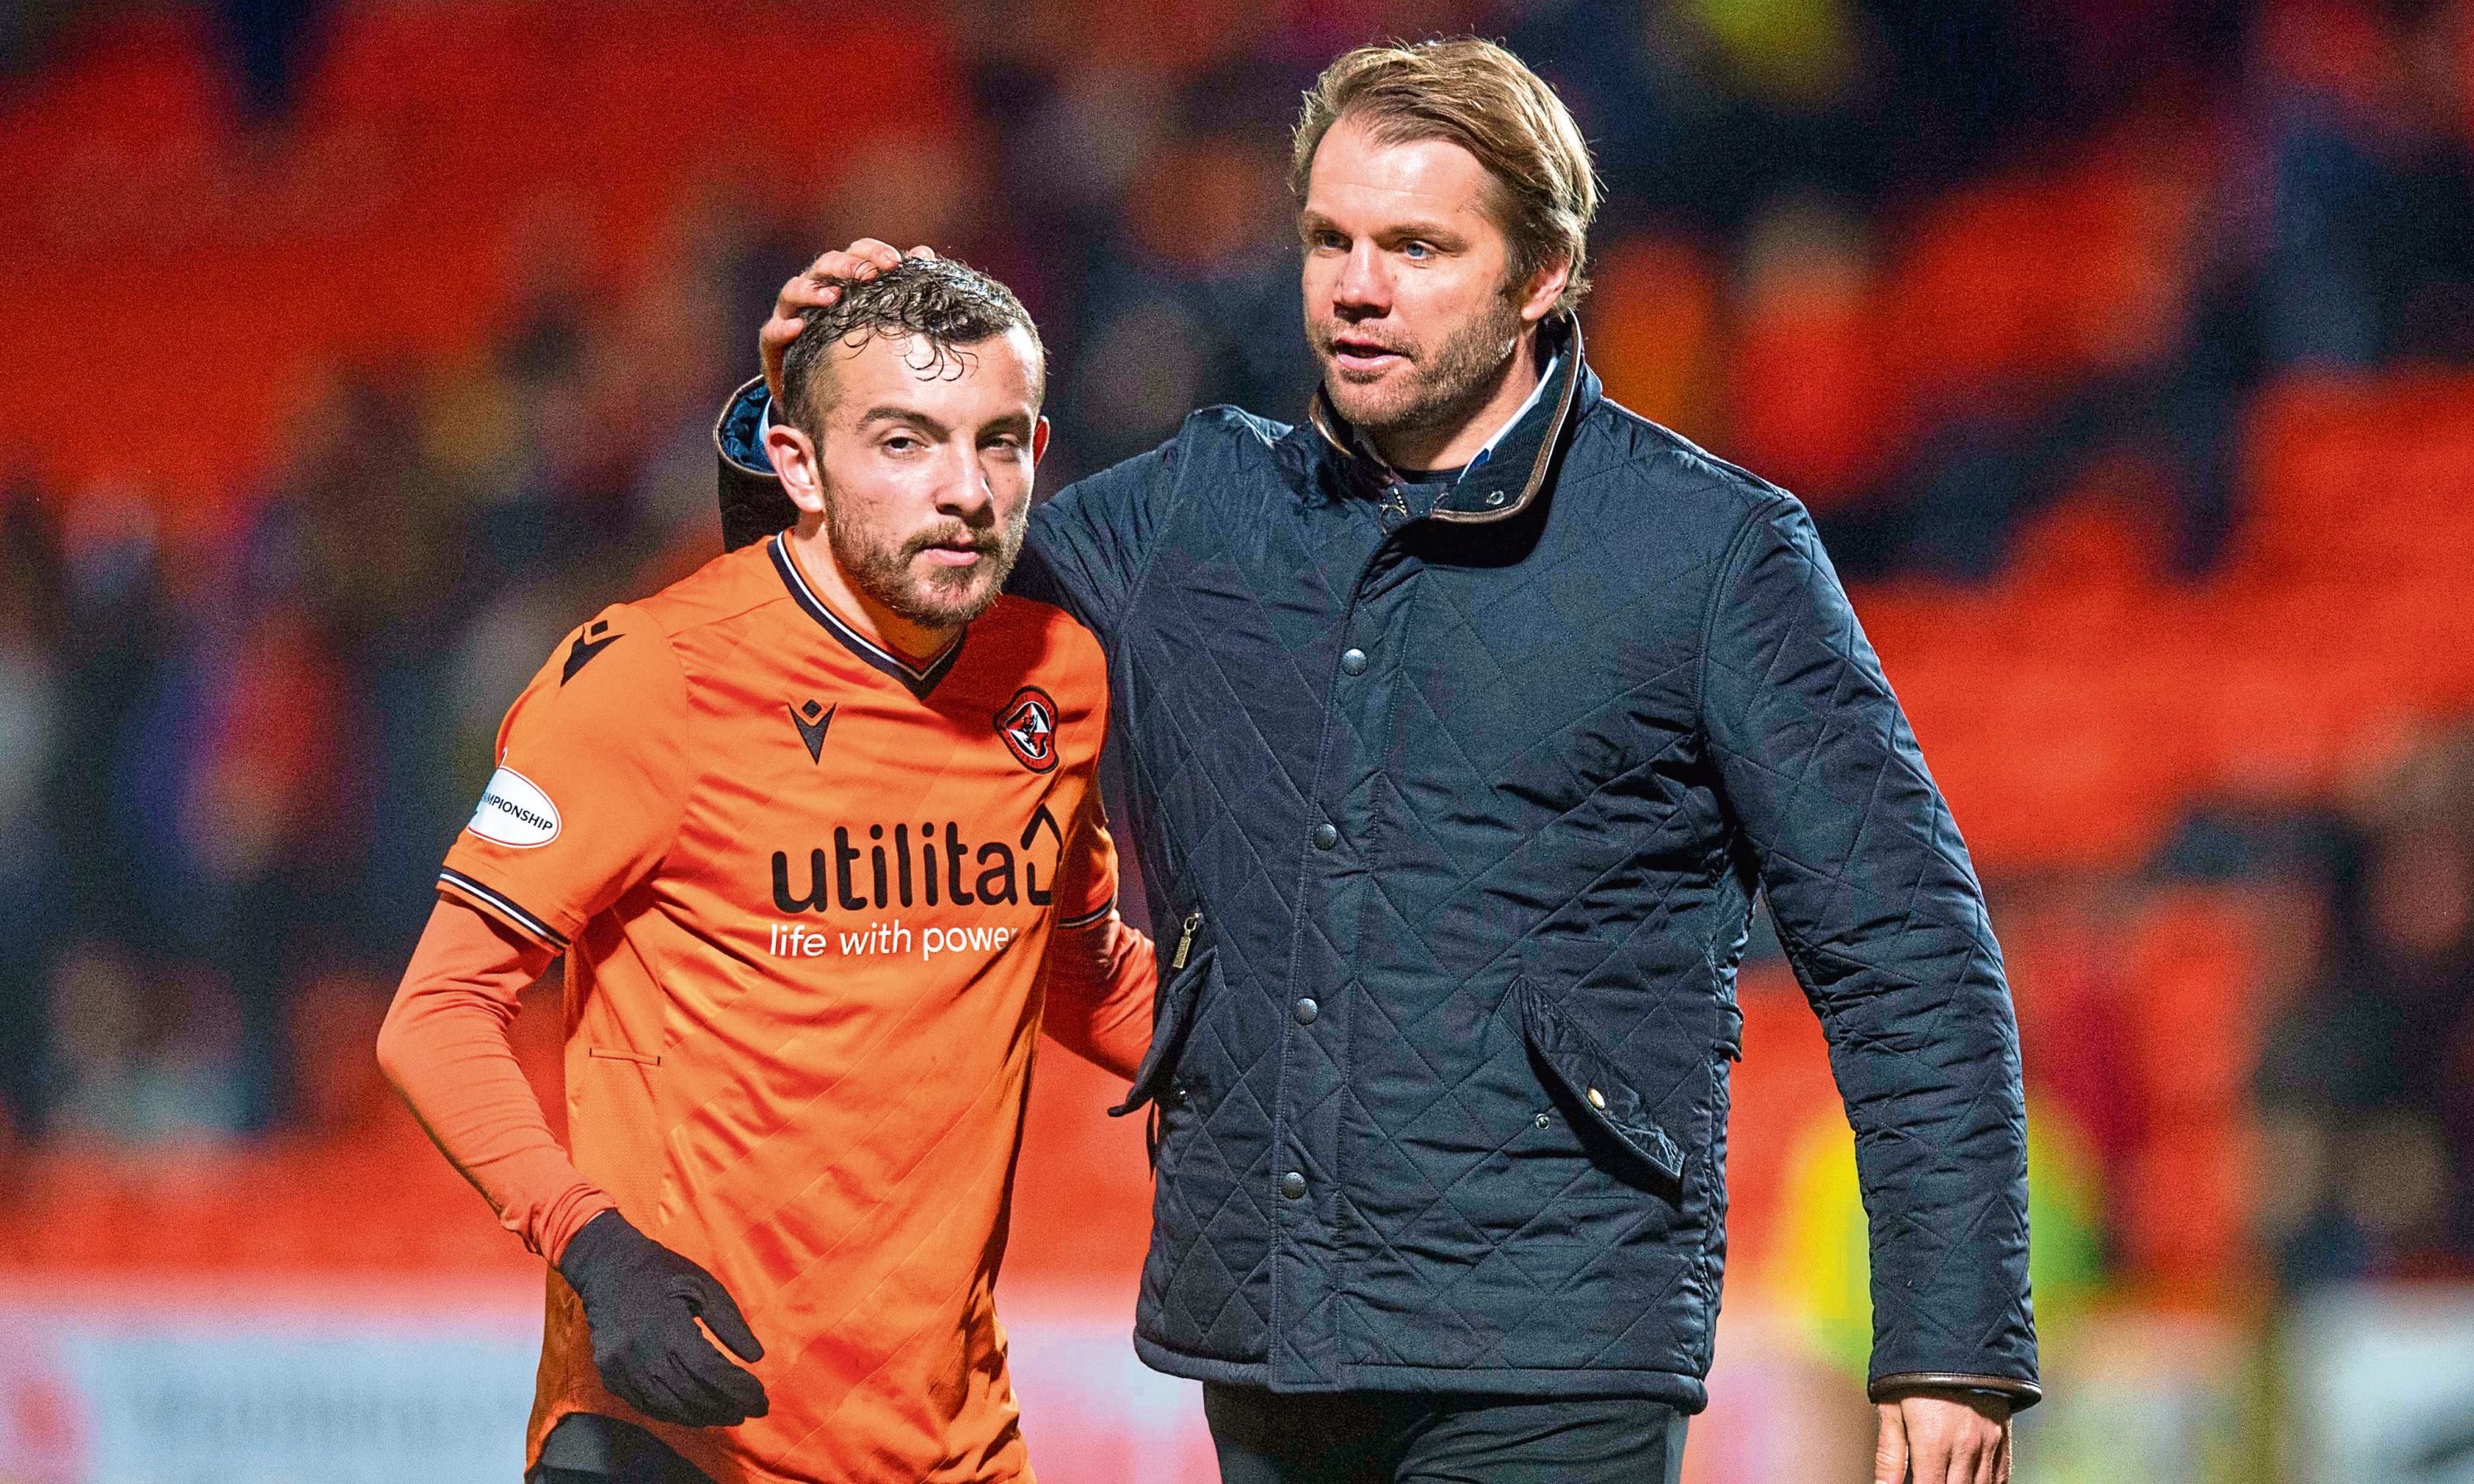 United Manager Robbie Neilson celebrates at full time with Paul McMullan after defeating Queen of the South.